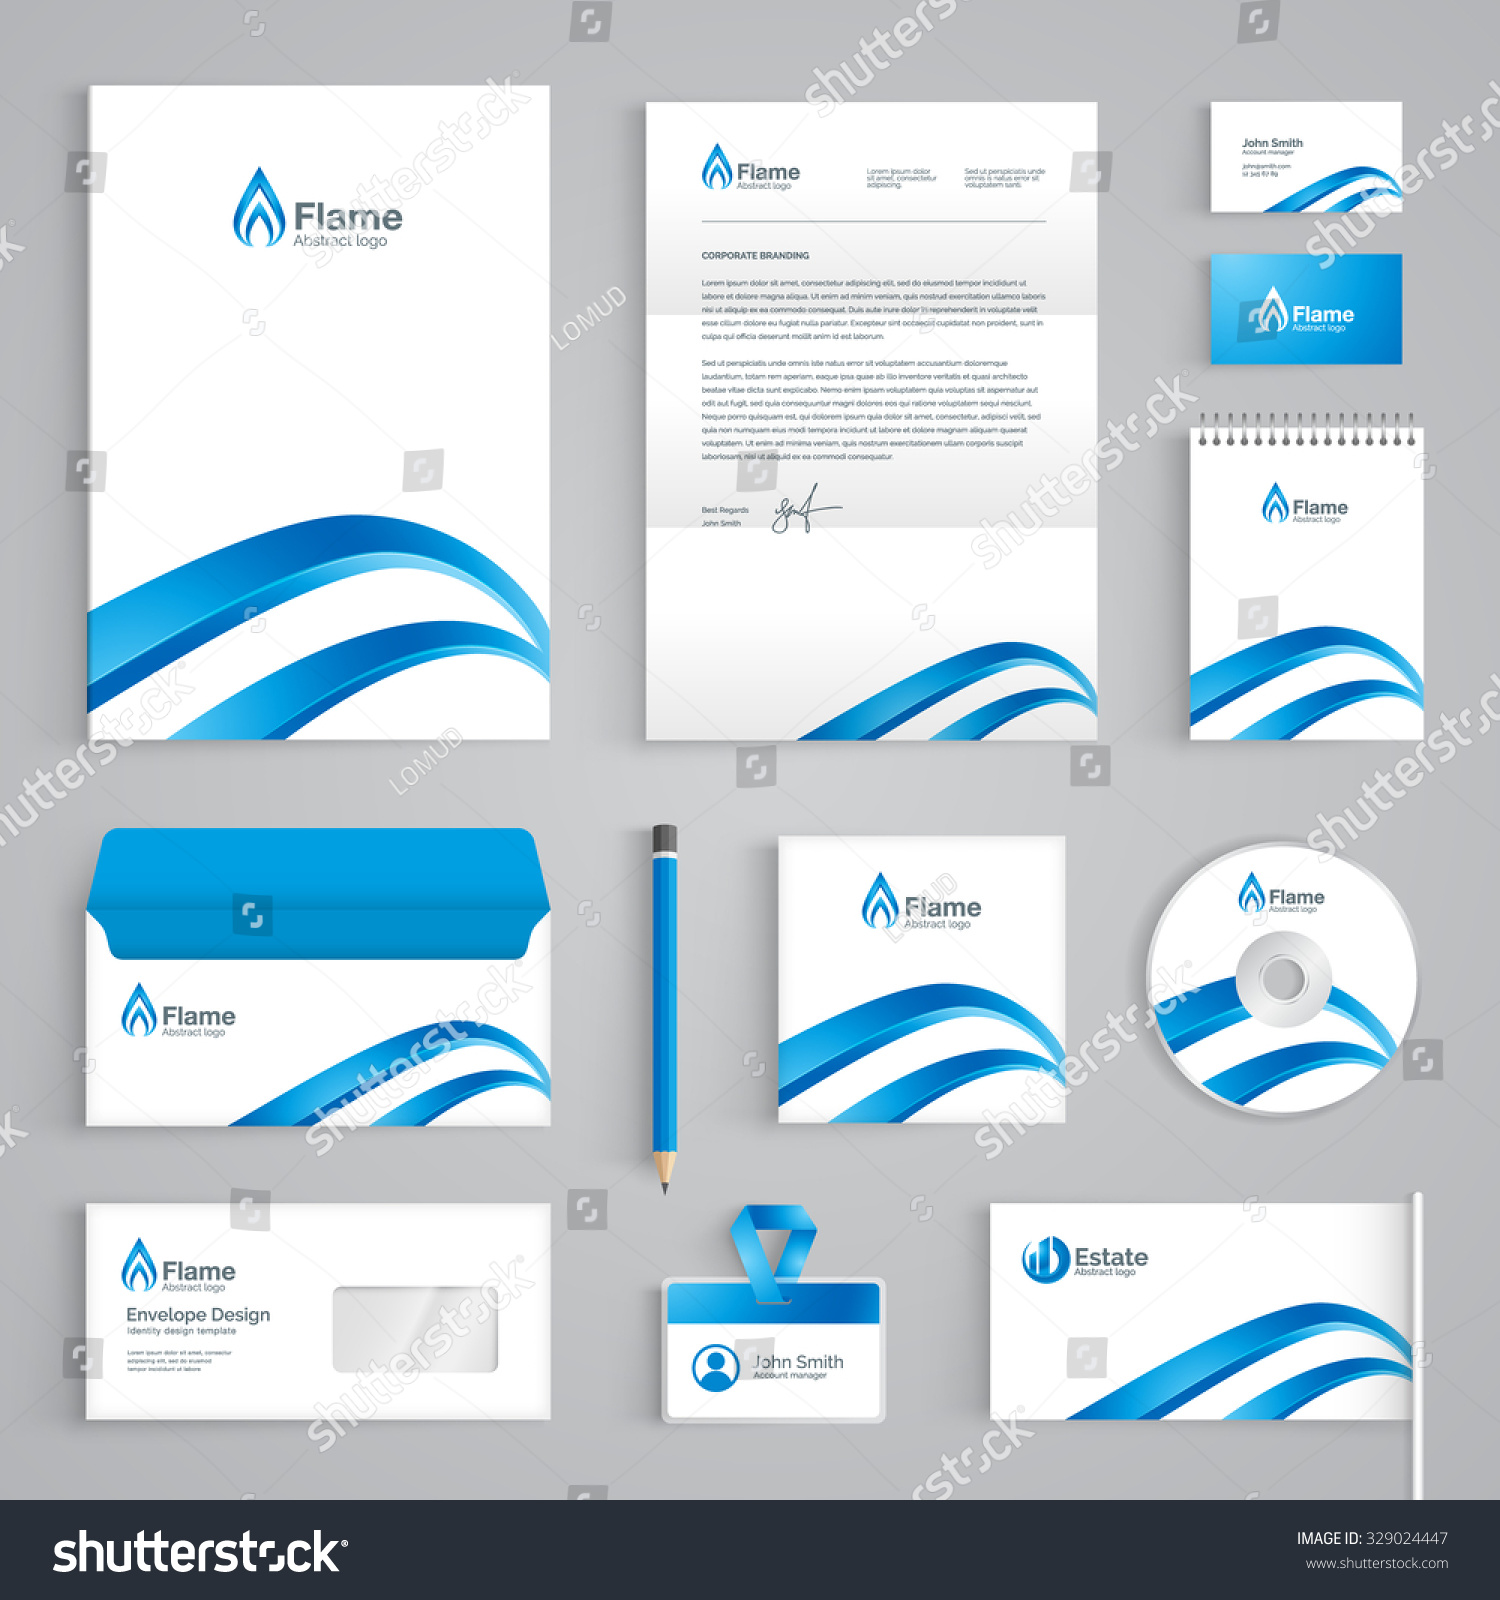 Corporate Identity Branding Template Abstract Vector Stock Vector ...